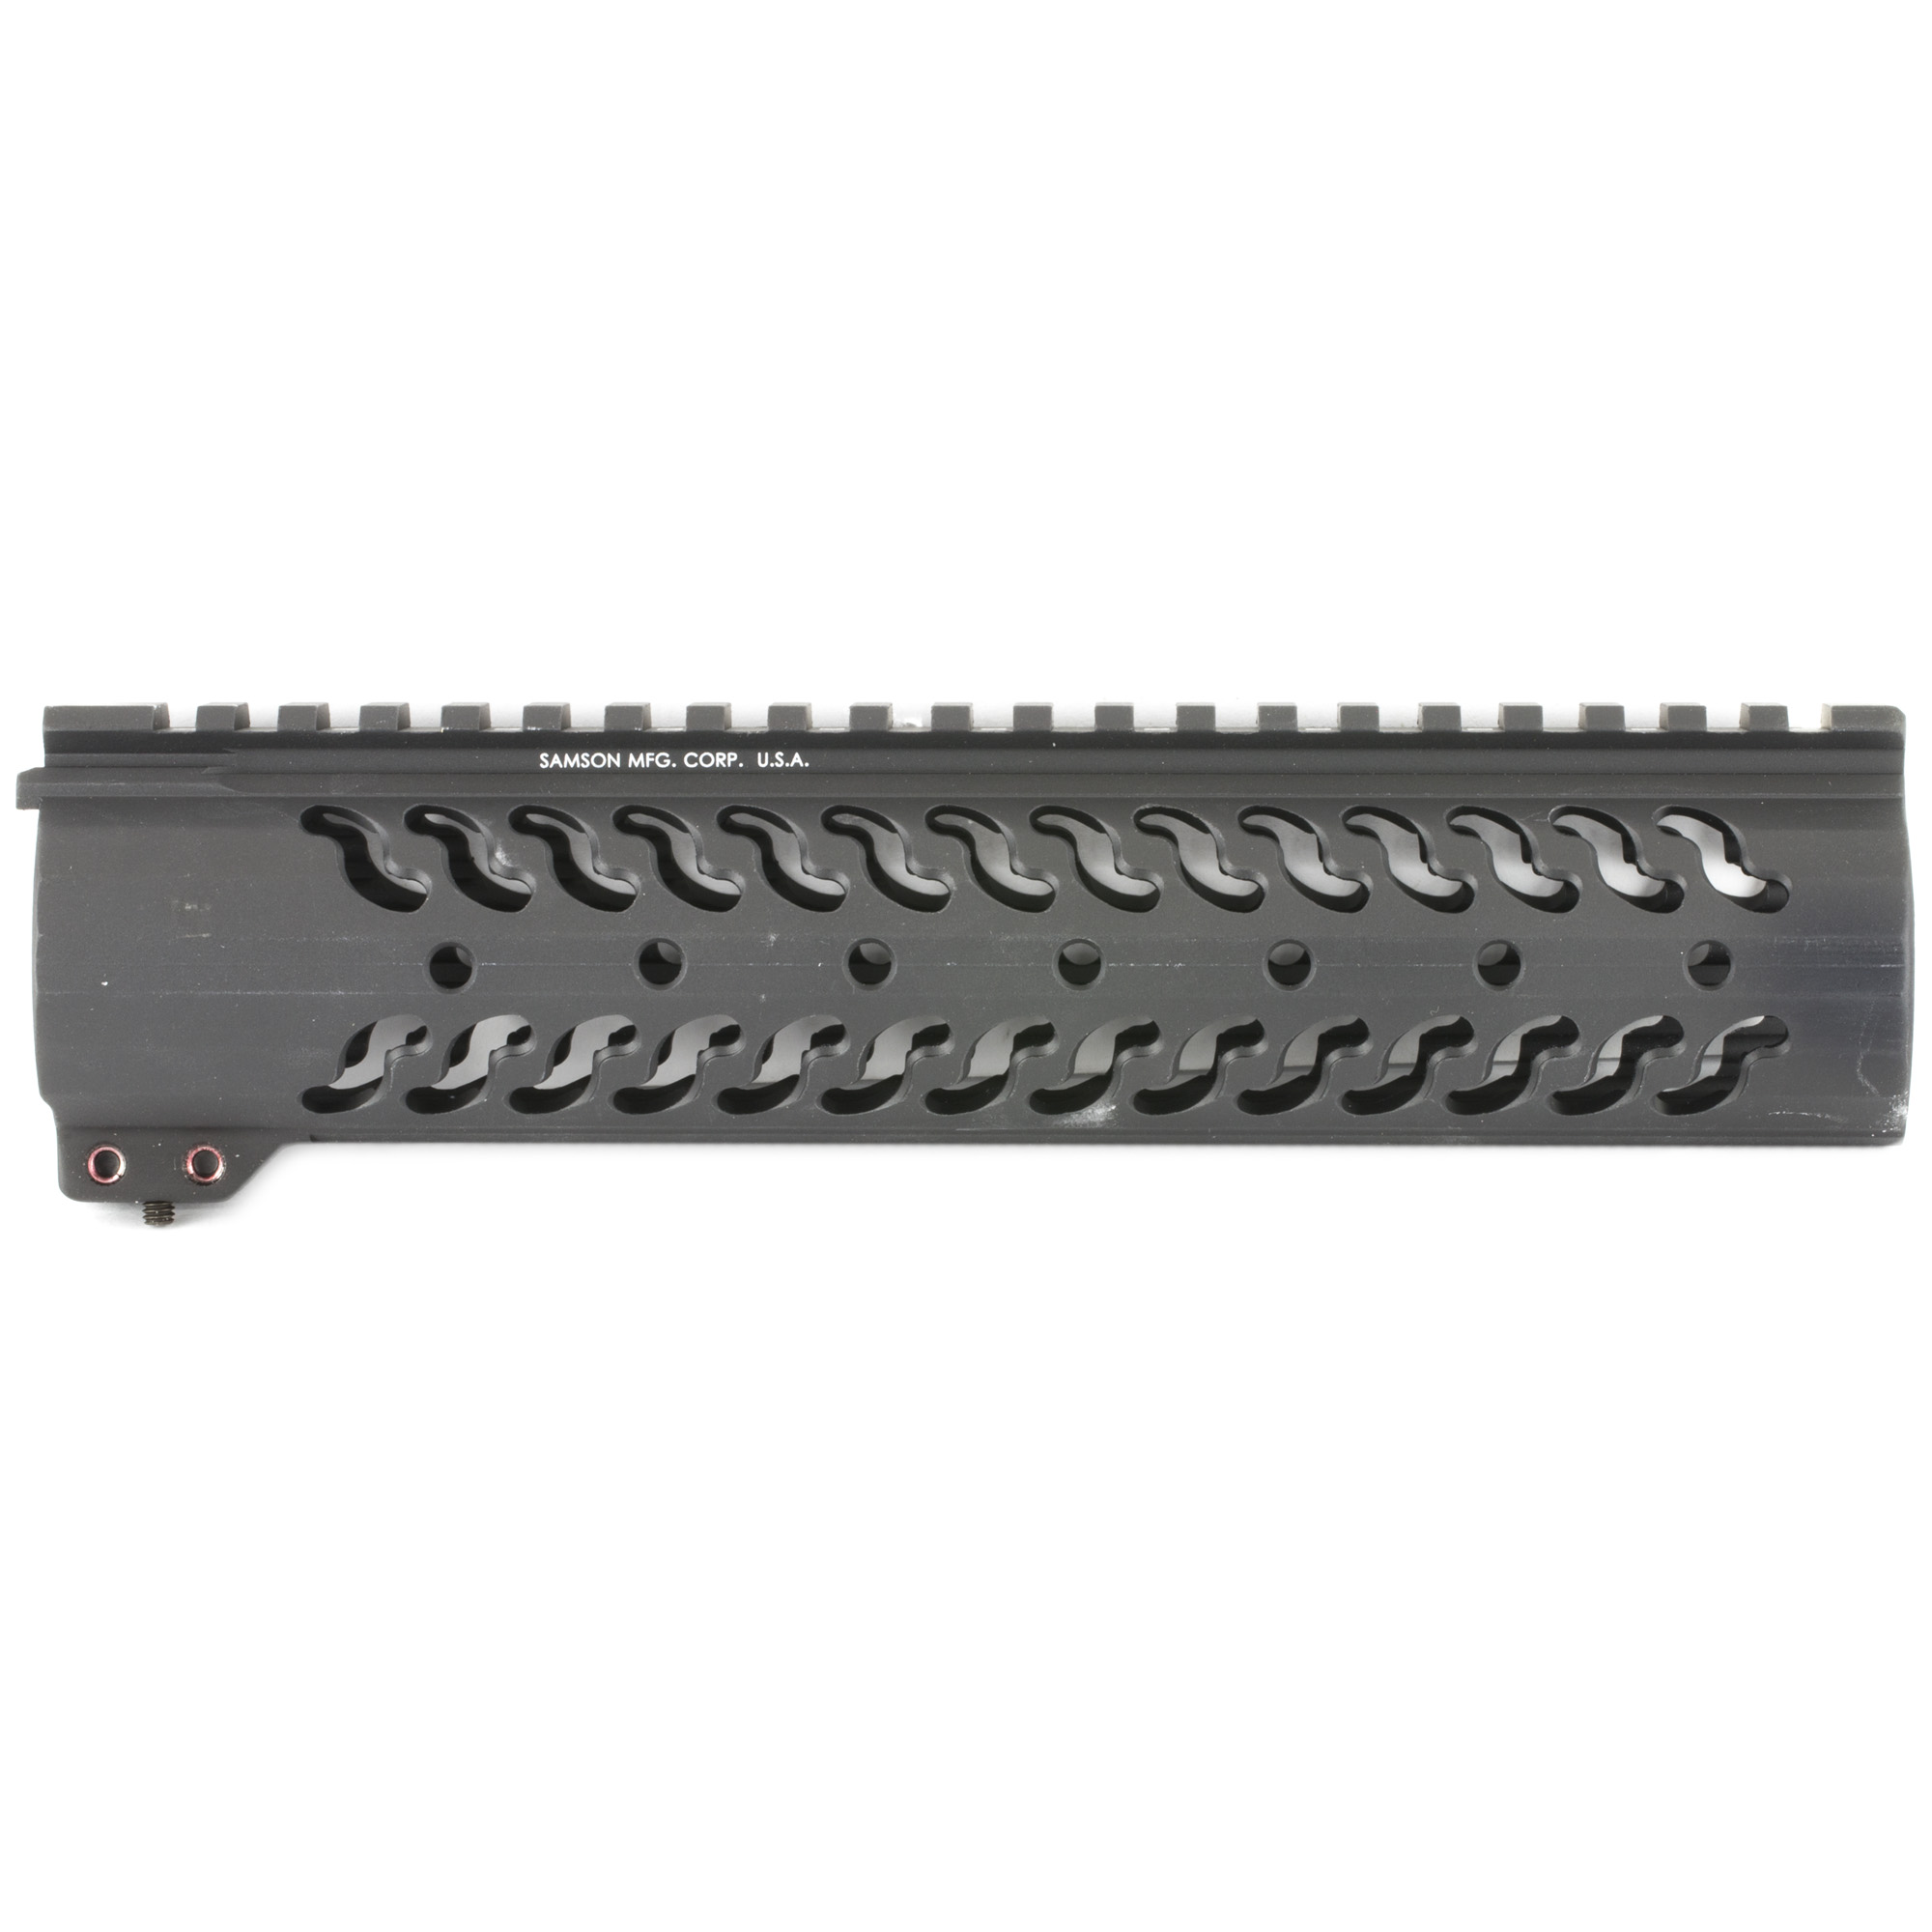 """The Samson Evolution Series features a free-floating AR-15 rail system. Being lightweight and durable allows the Samson Evolution Series to offer the perfect upgrade for 3-Gun competition shooting"""" law enforcement and military personnel or weekend enthusiasts. Accessory picatinny rails can be added or removed at any of 7 positions around the rail and any place along the length of the tube. Rail accommodates most piston systems. This is the 9"""" Carbine Length Evolution Rail for the AR-15.Standard Evolution Series Includes: Thermal bushings"""" Two (2) 2"""" accessory rail kits"""" One (1) 4"""" accessory rail kit and wrenches."""